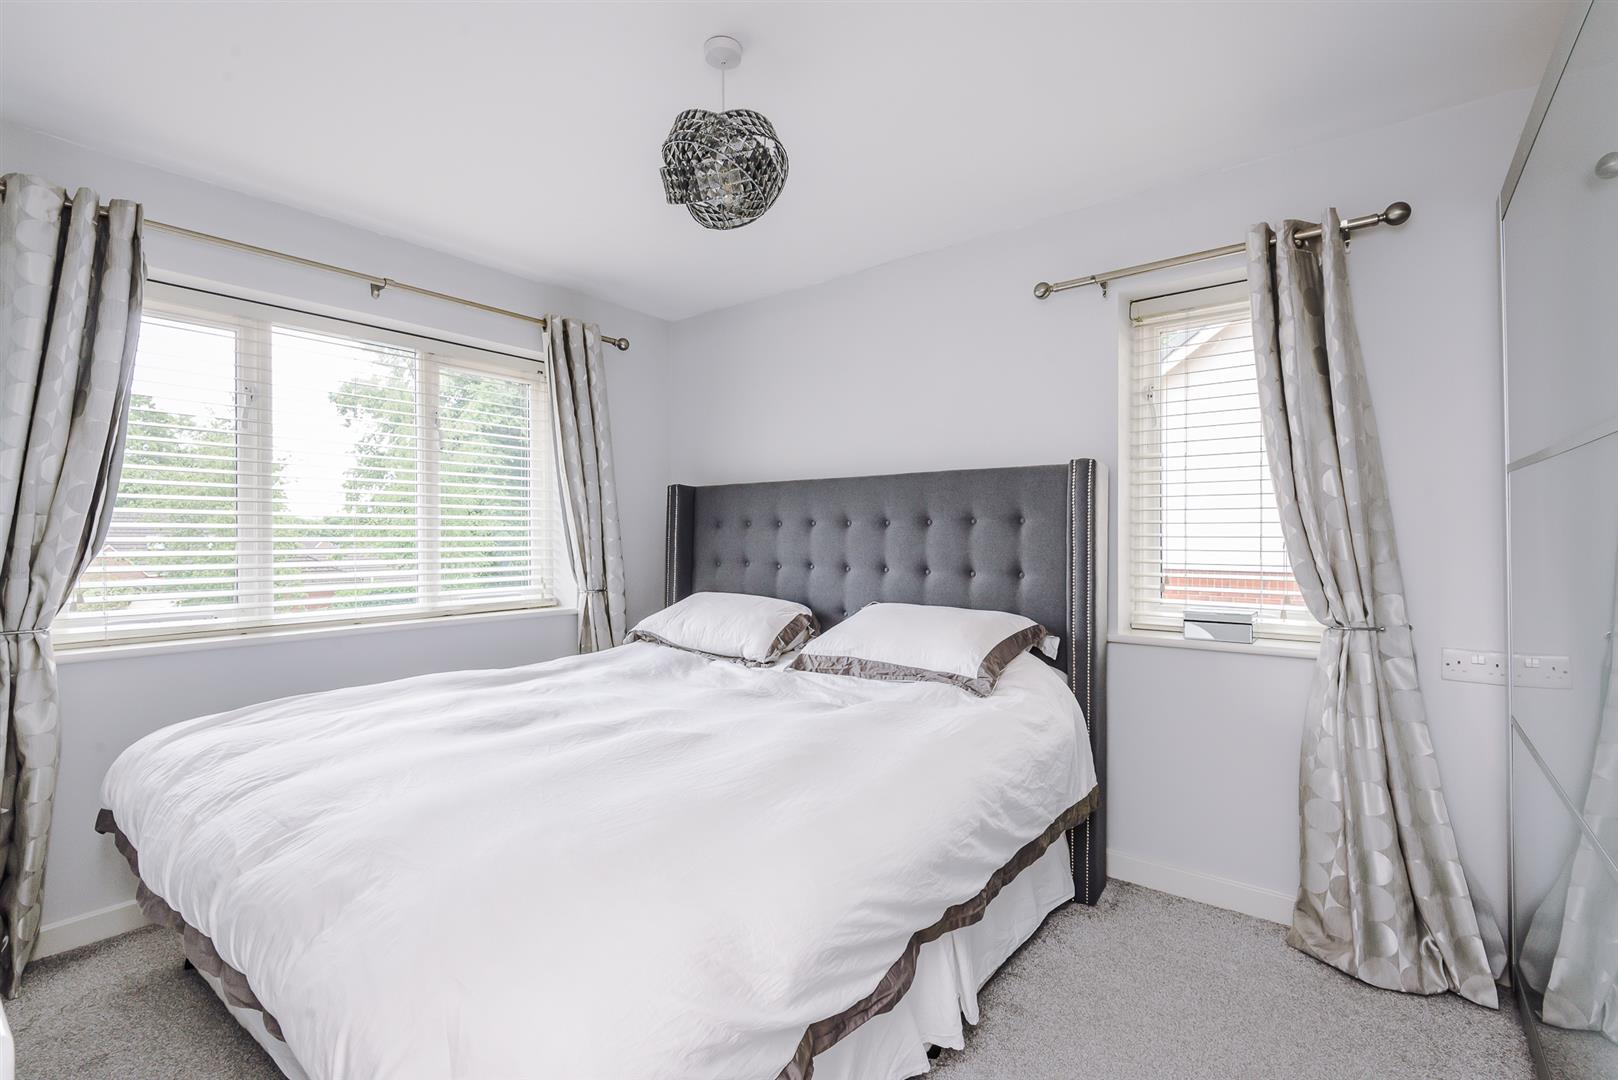 2 Bedroom Terraced House Sale Agreed Image 6